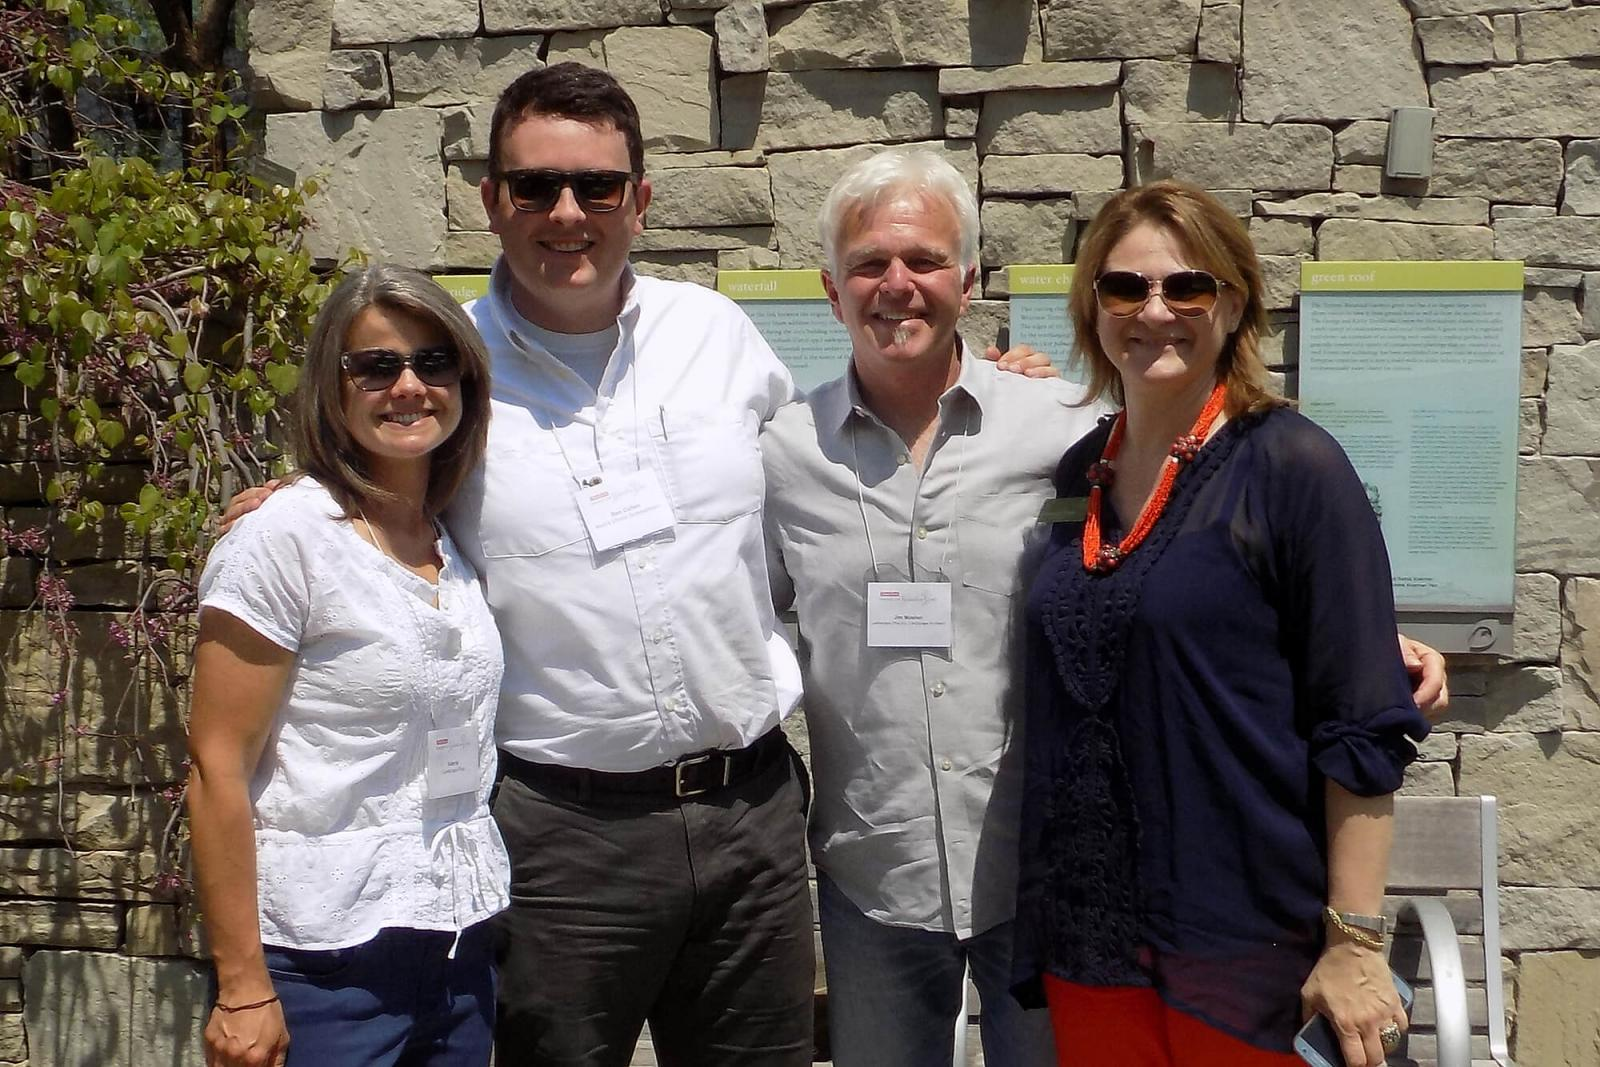 Valerie Groves (Landscape Plus), Ben Cullen (Mark's Choice), Jim Mosher (Landscape Plus) and Claudia Zuccato Ria (Toronto Botanical Garden). Mark's Choice and Landscape Plus sponsored this year's Through the Garden Gate tour.